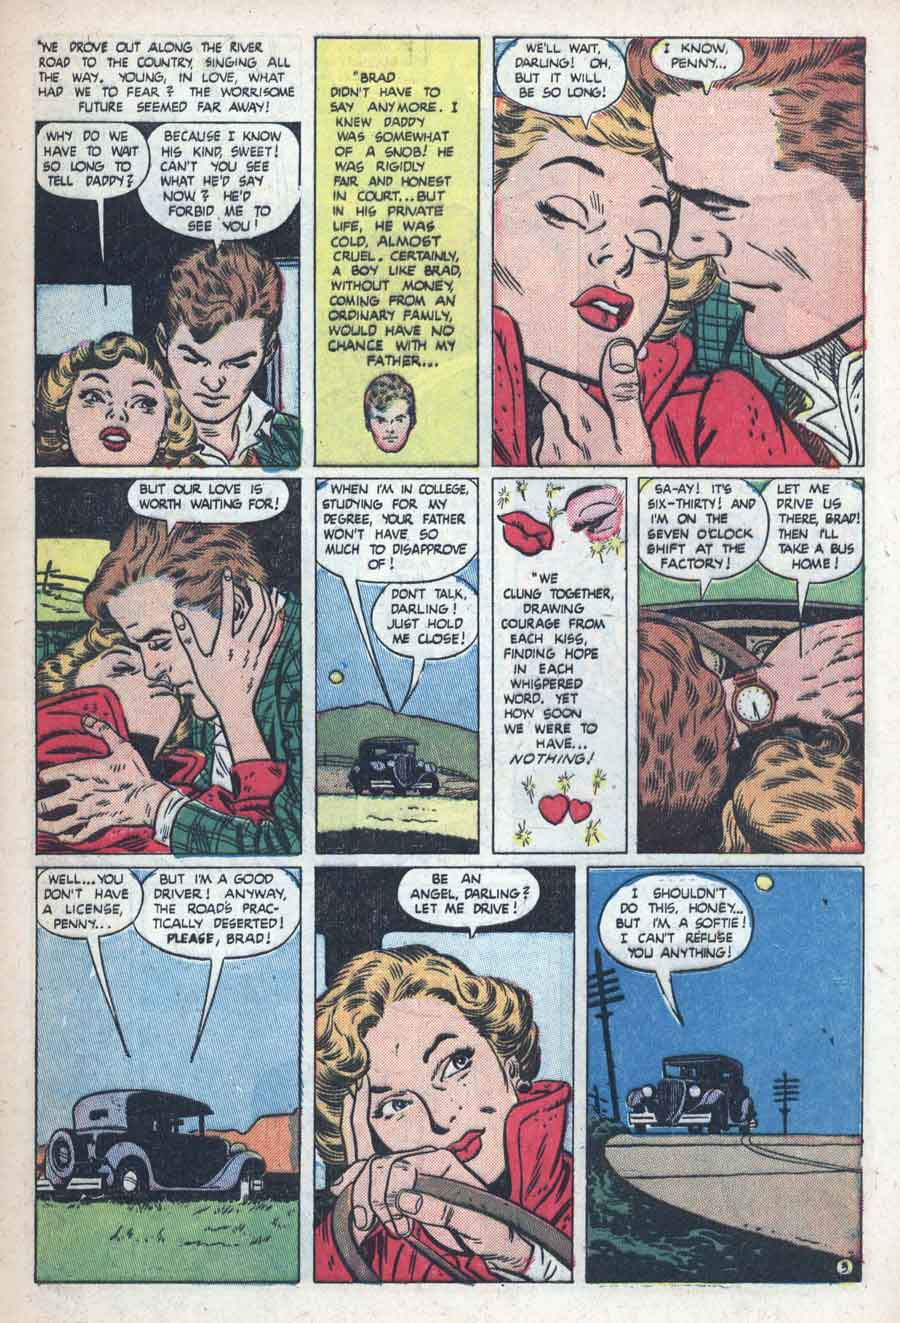 Best Romance v1 #5 standard romance comic book page art by Alex Toth